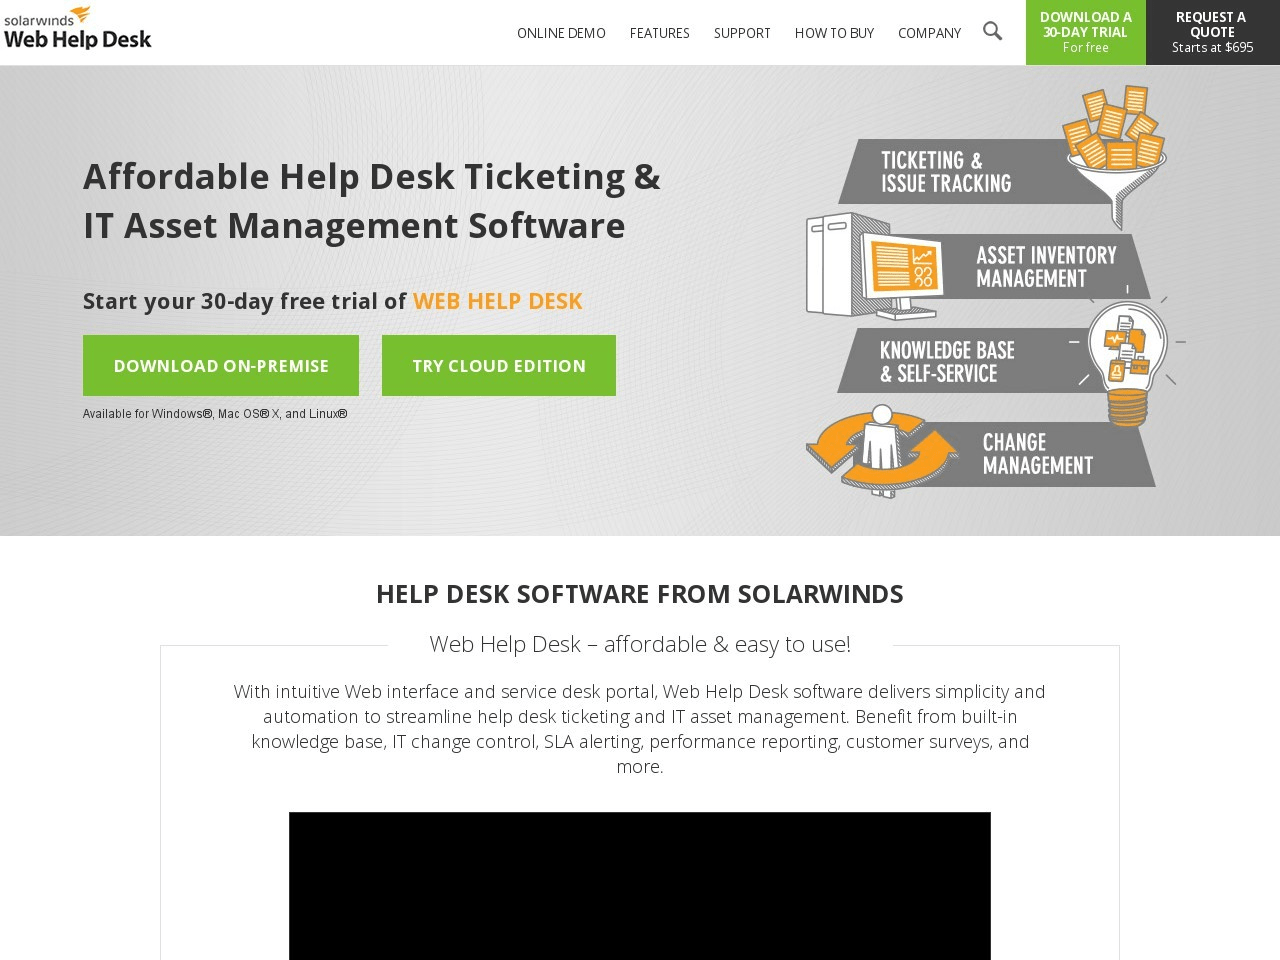 Solarwinds Web Help Desk Screenshot